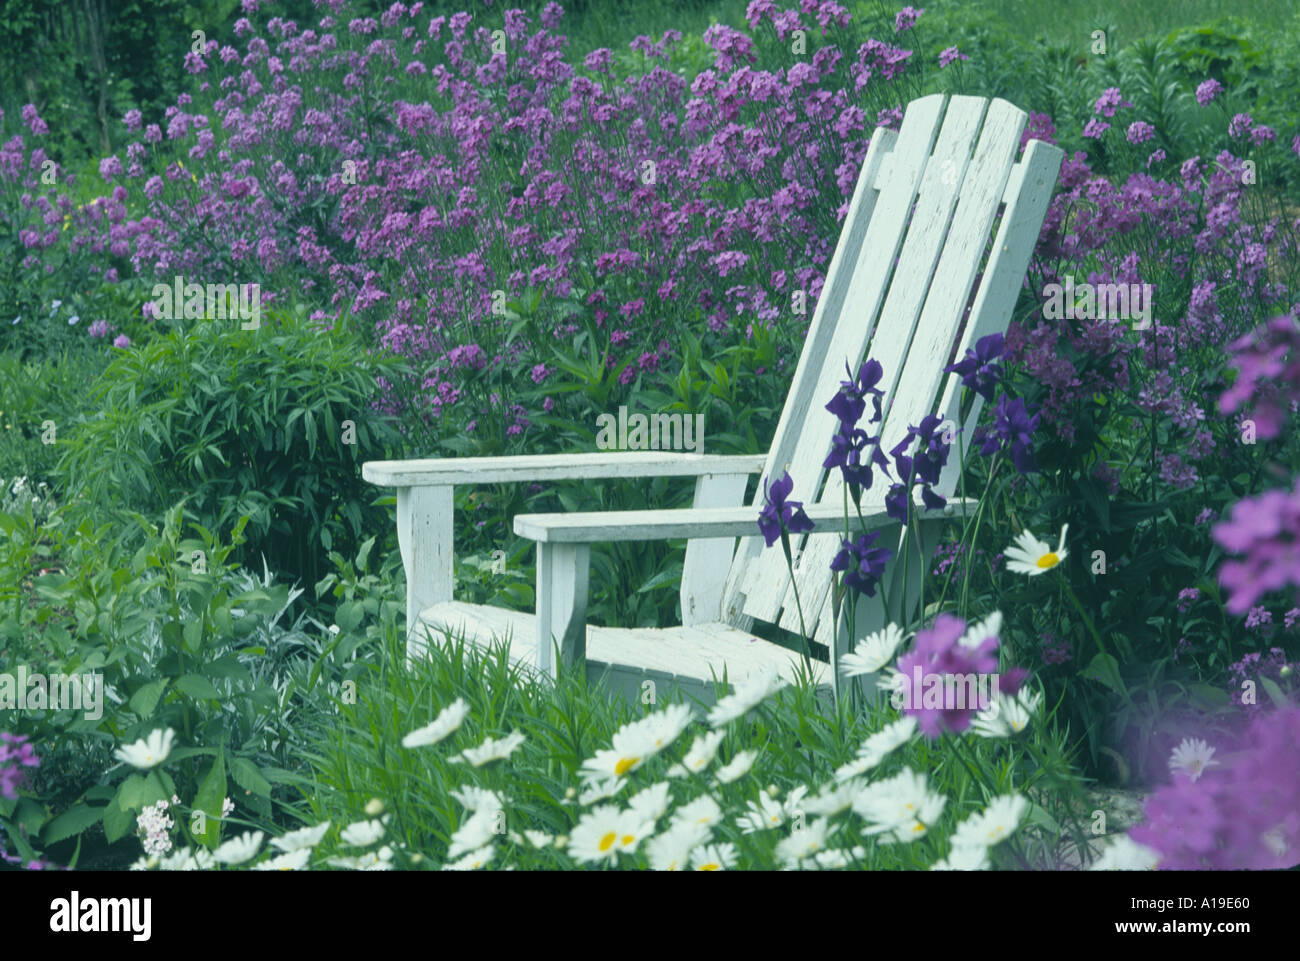 Her Garden Chair White Adirondack Chair In Group Of